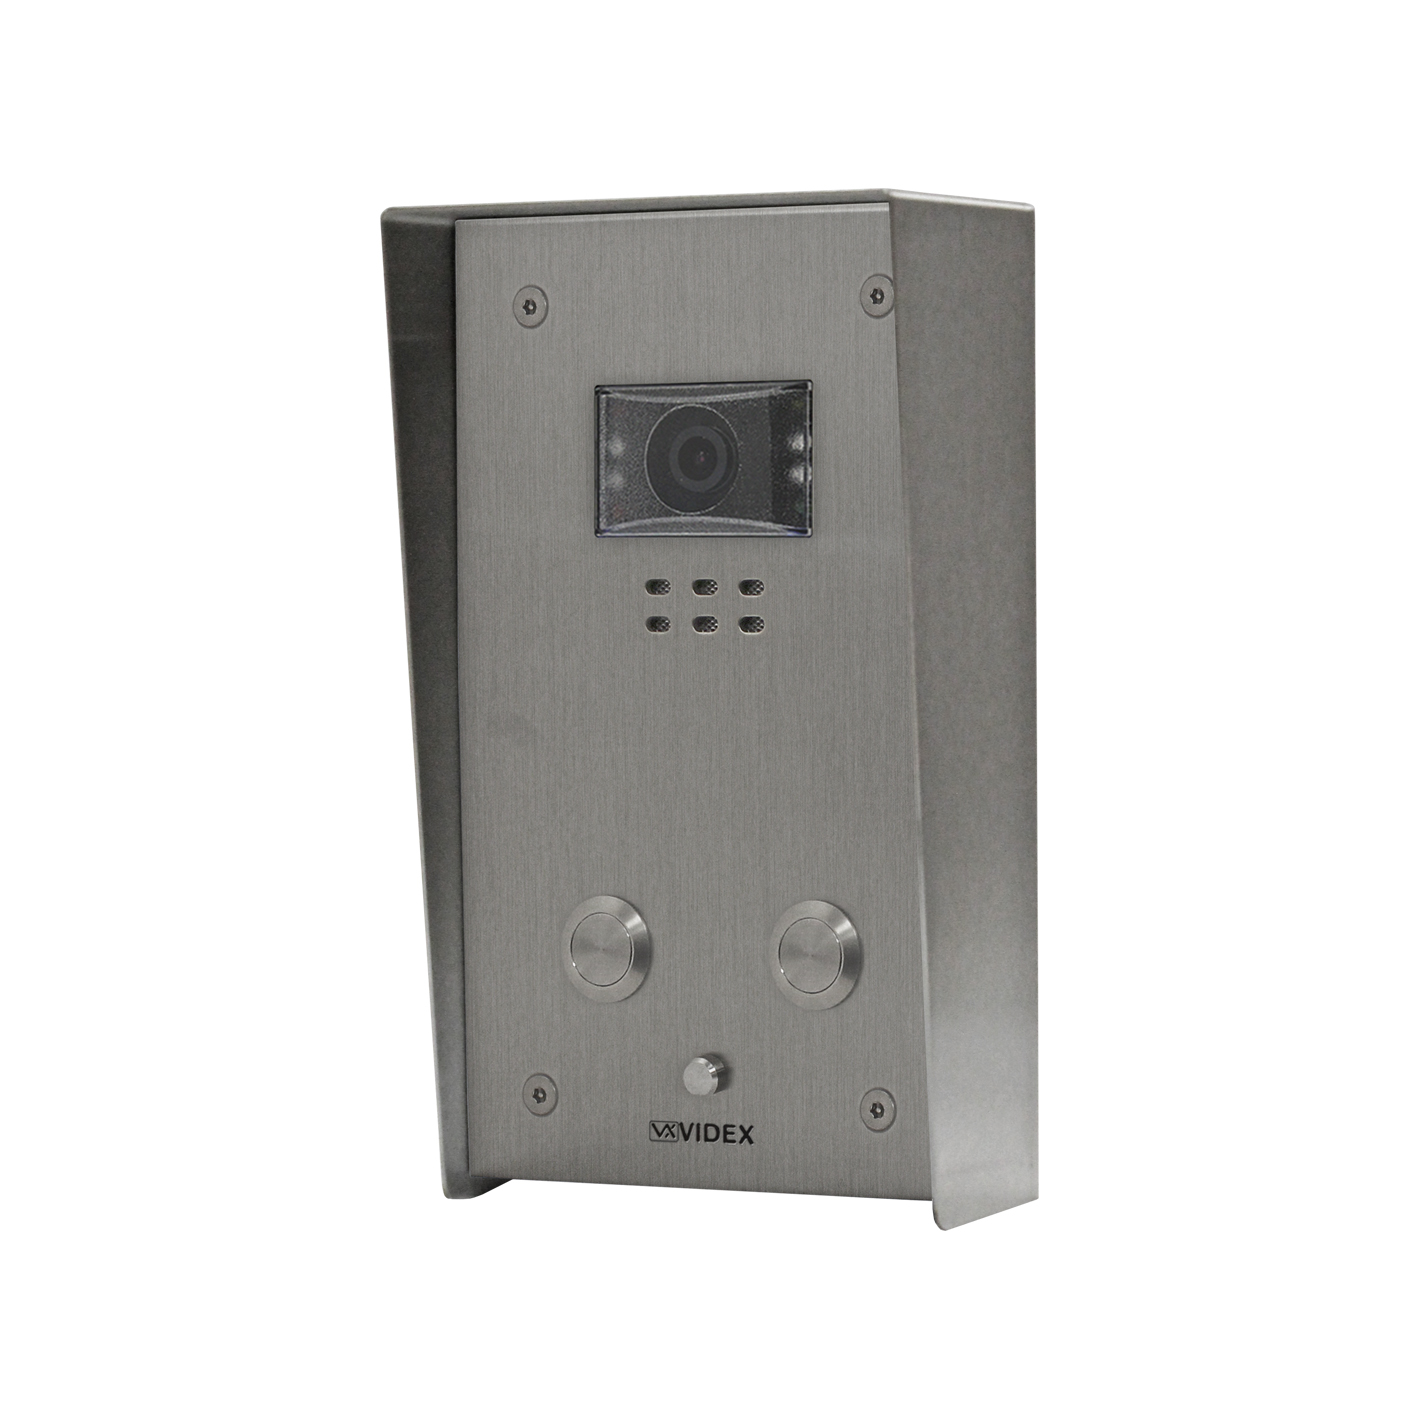 2 button Vandal Resistant IP Colour Video Panel (surface)